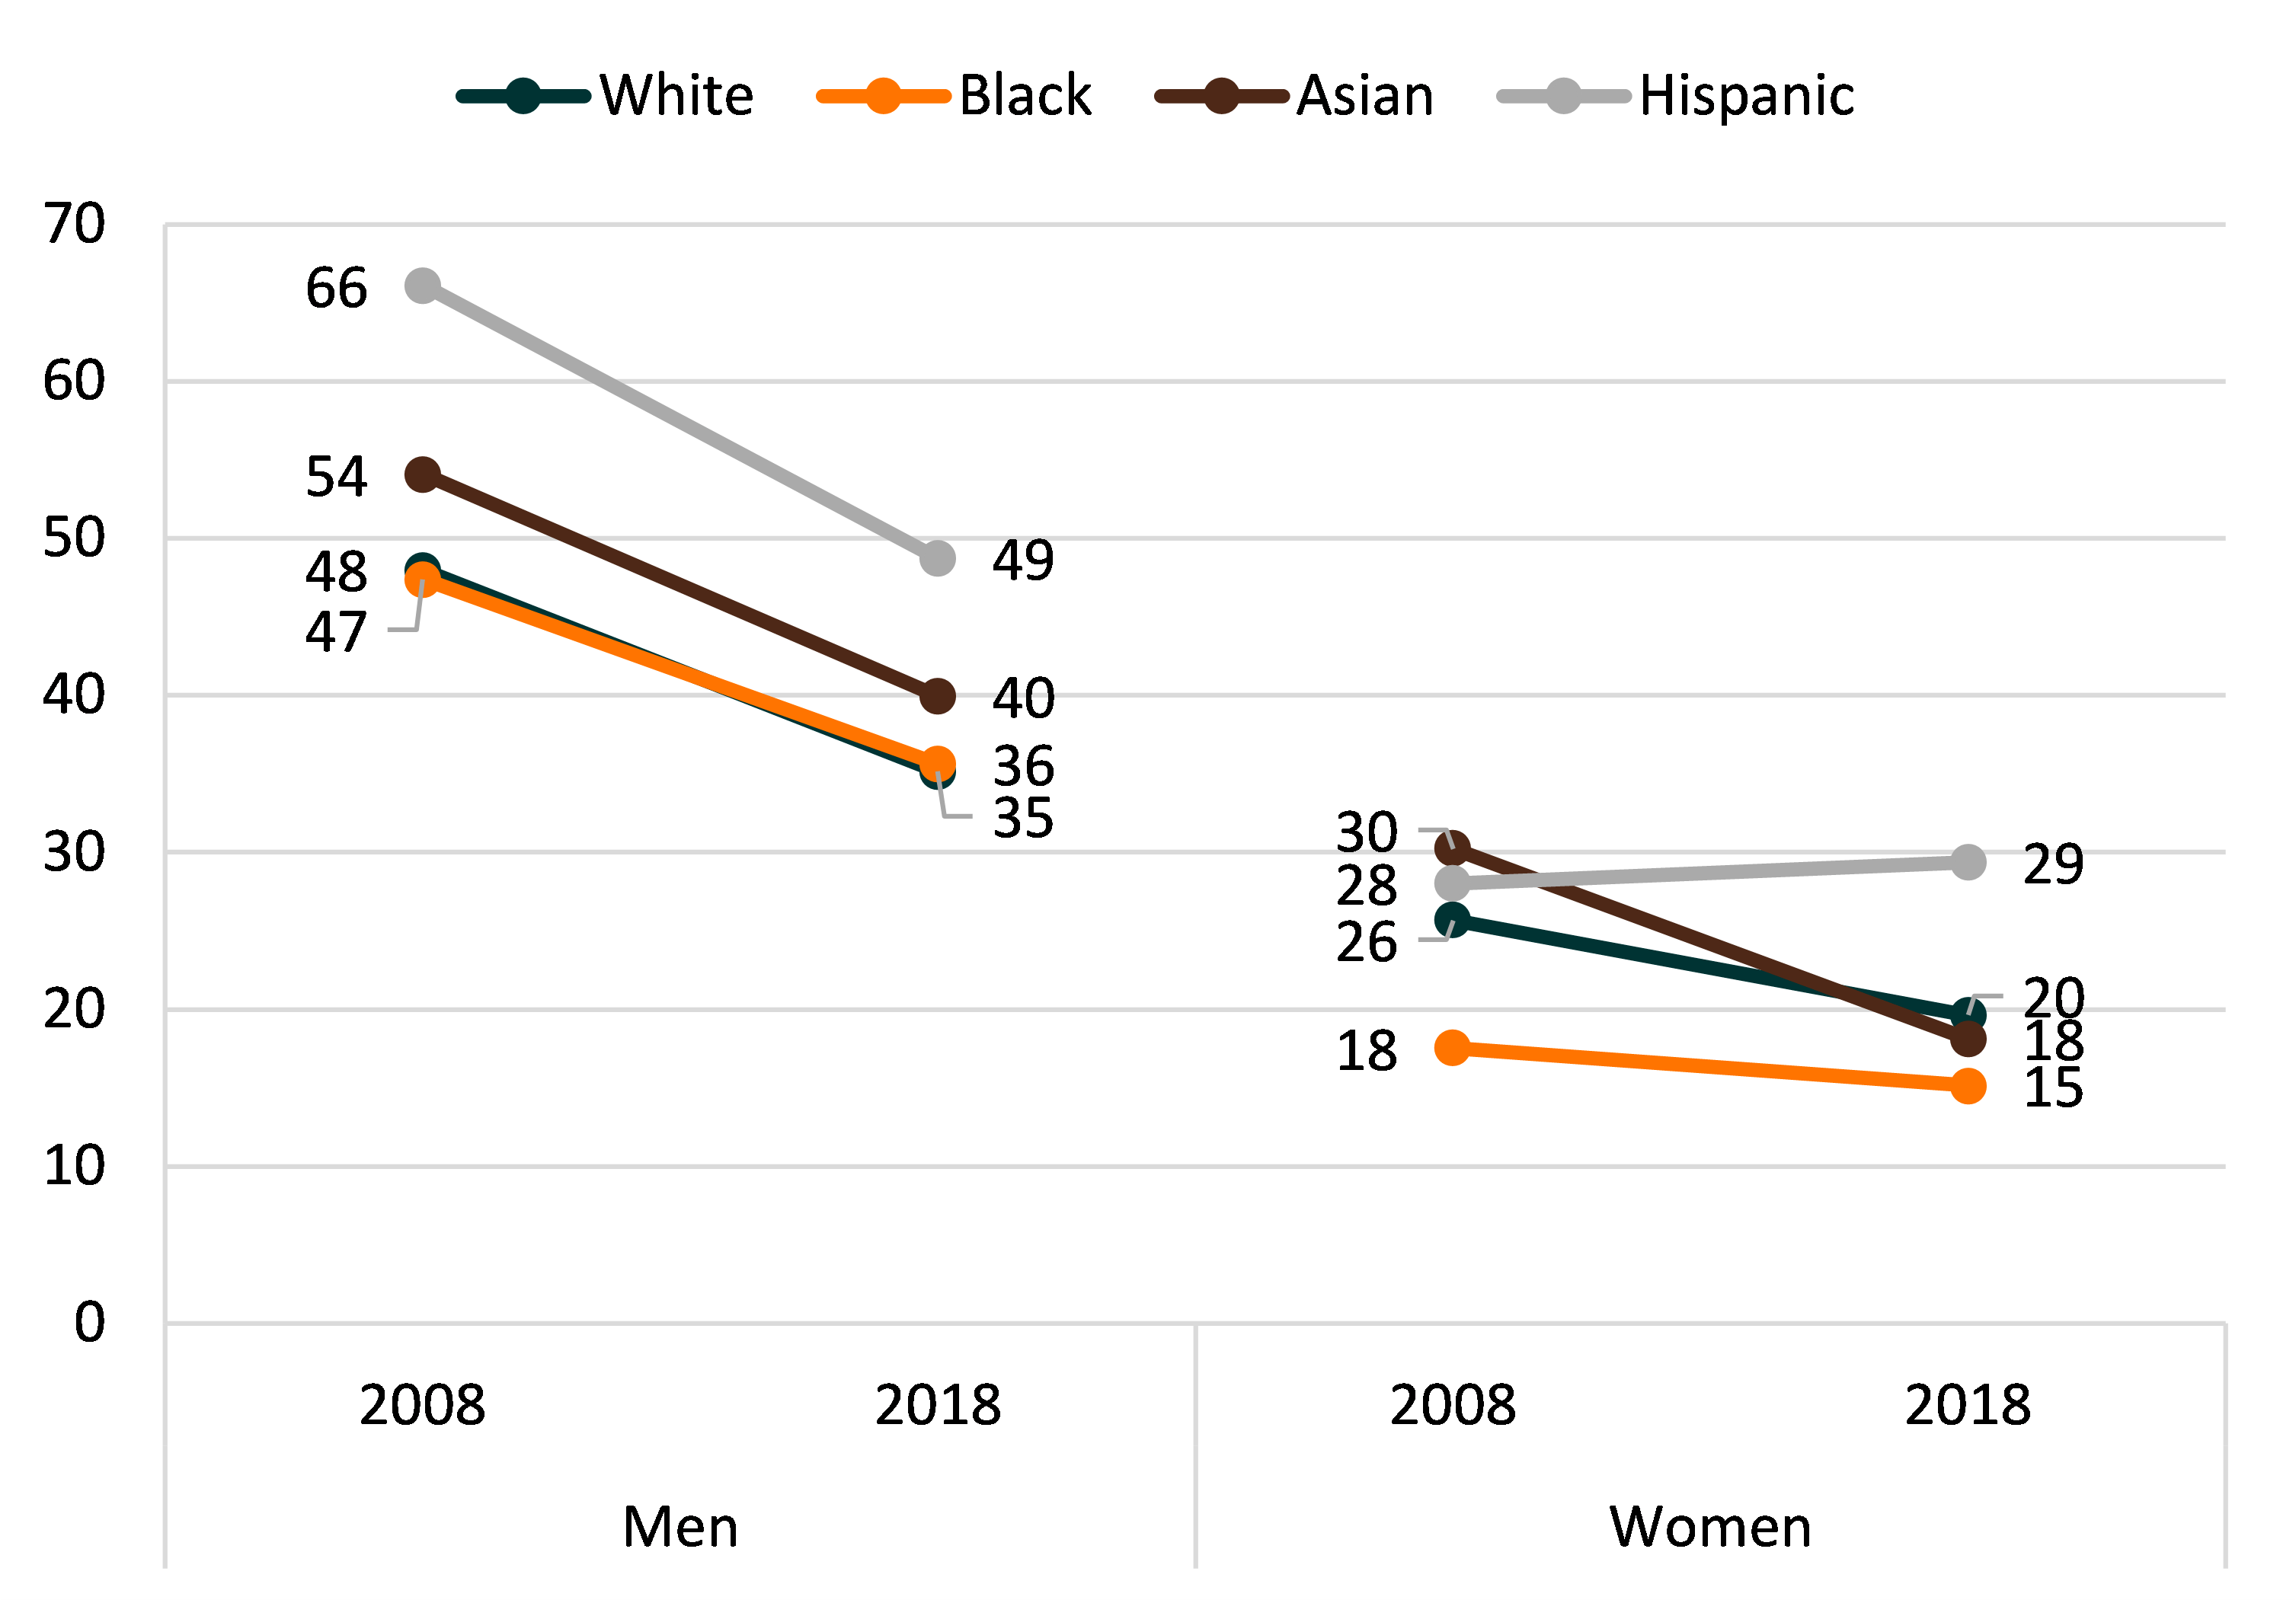 tri-color line chart showing Figure 3. Remarriage Rate by Gender and Race/Ethnicity, 2008 & 2018